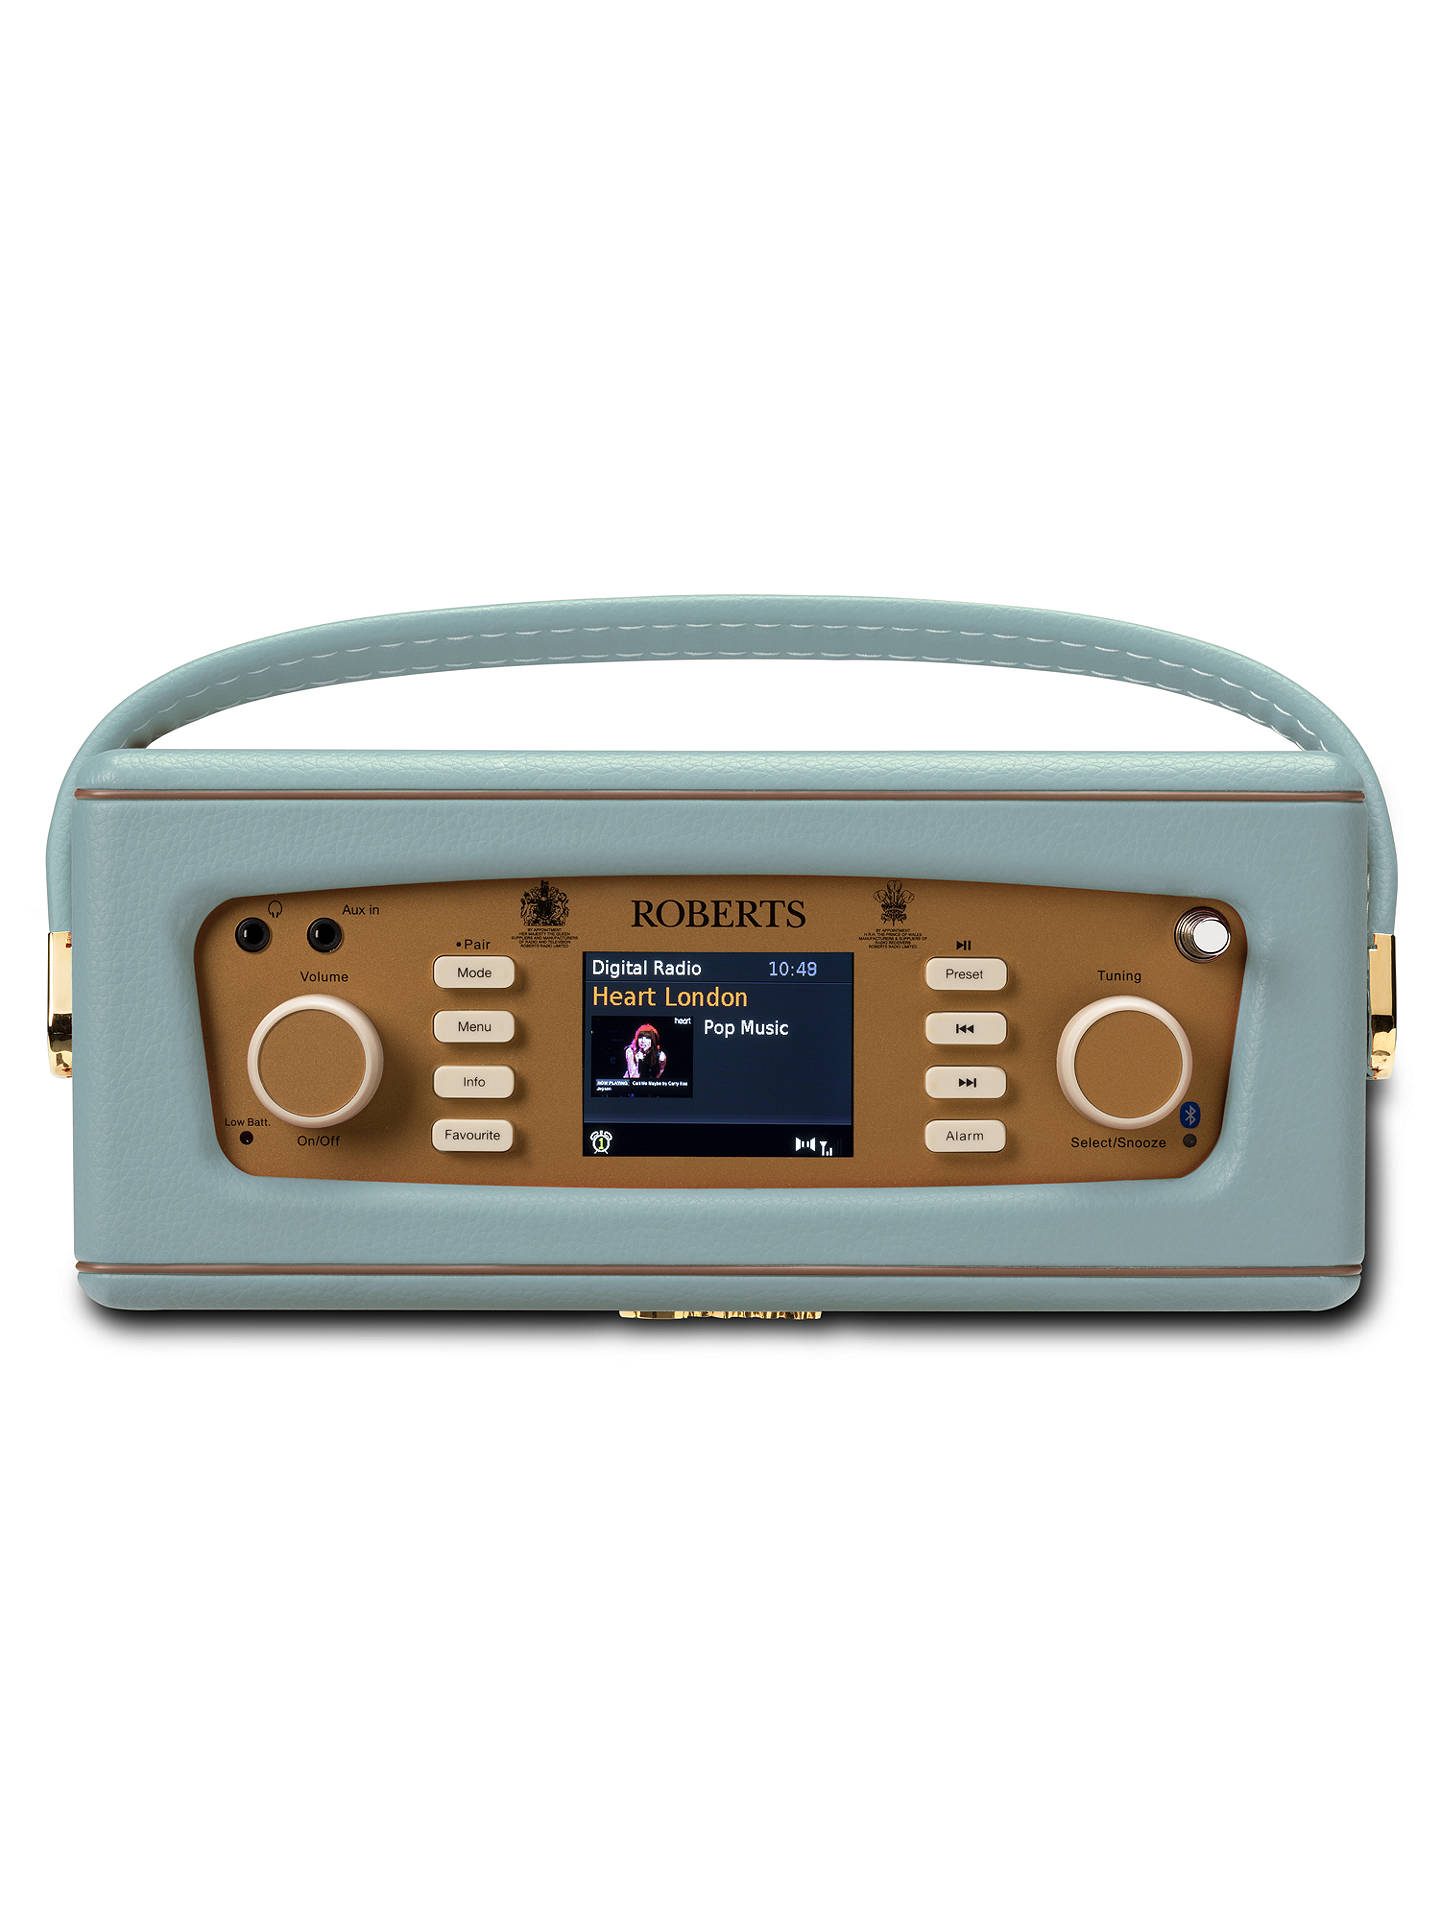 Buy ROBERTS Revival RD70 DAB/DAB+/FM Bluetooth Digital Radio with Alarm, Duck Egg Online at johnlewis.com